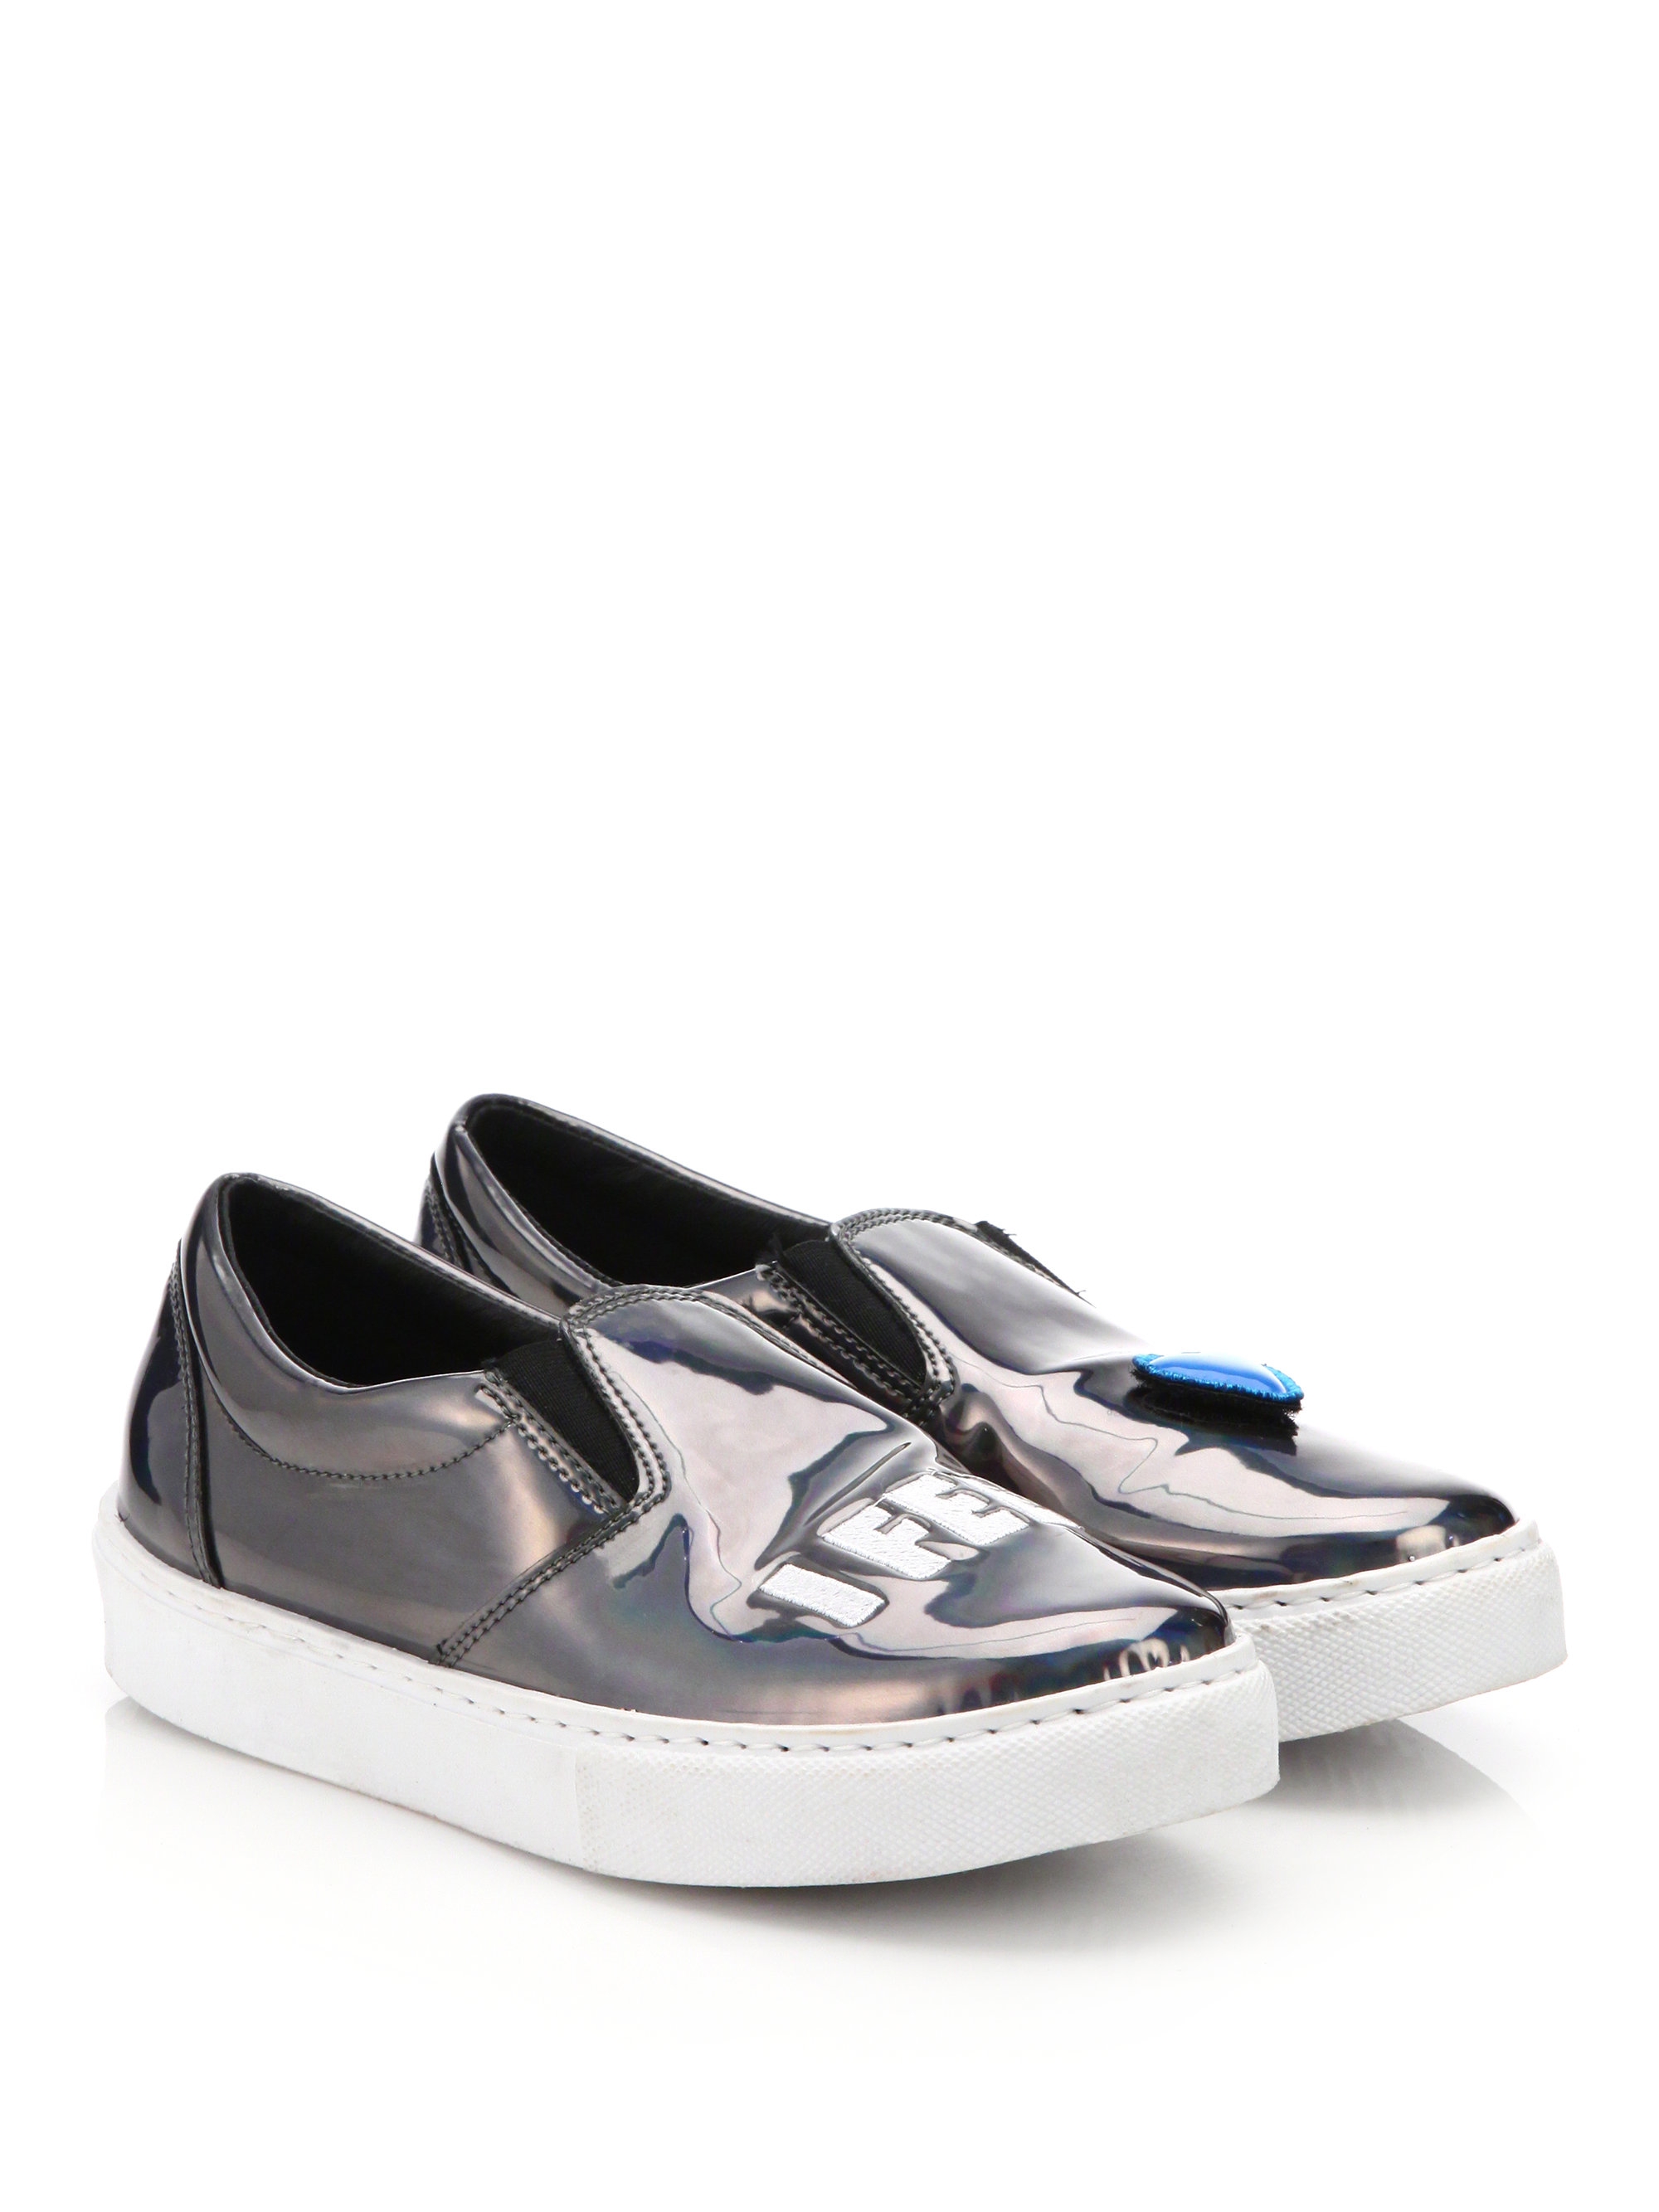 chiara ferragni i feel heart patent leather skate shoes lyst. Black Bedroom Furniture Sets. Home Design Ideas